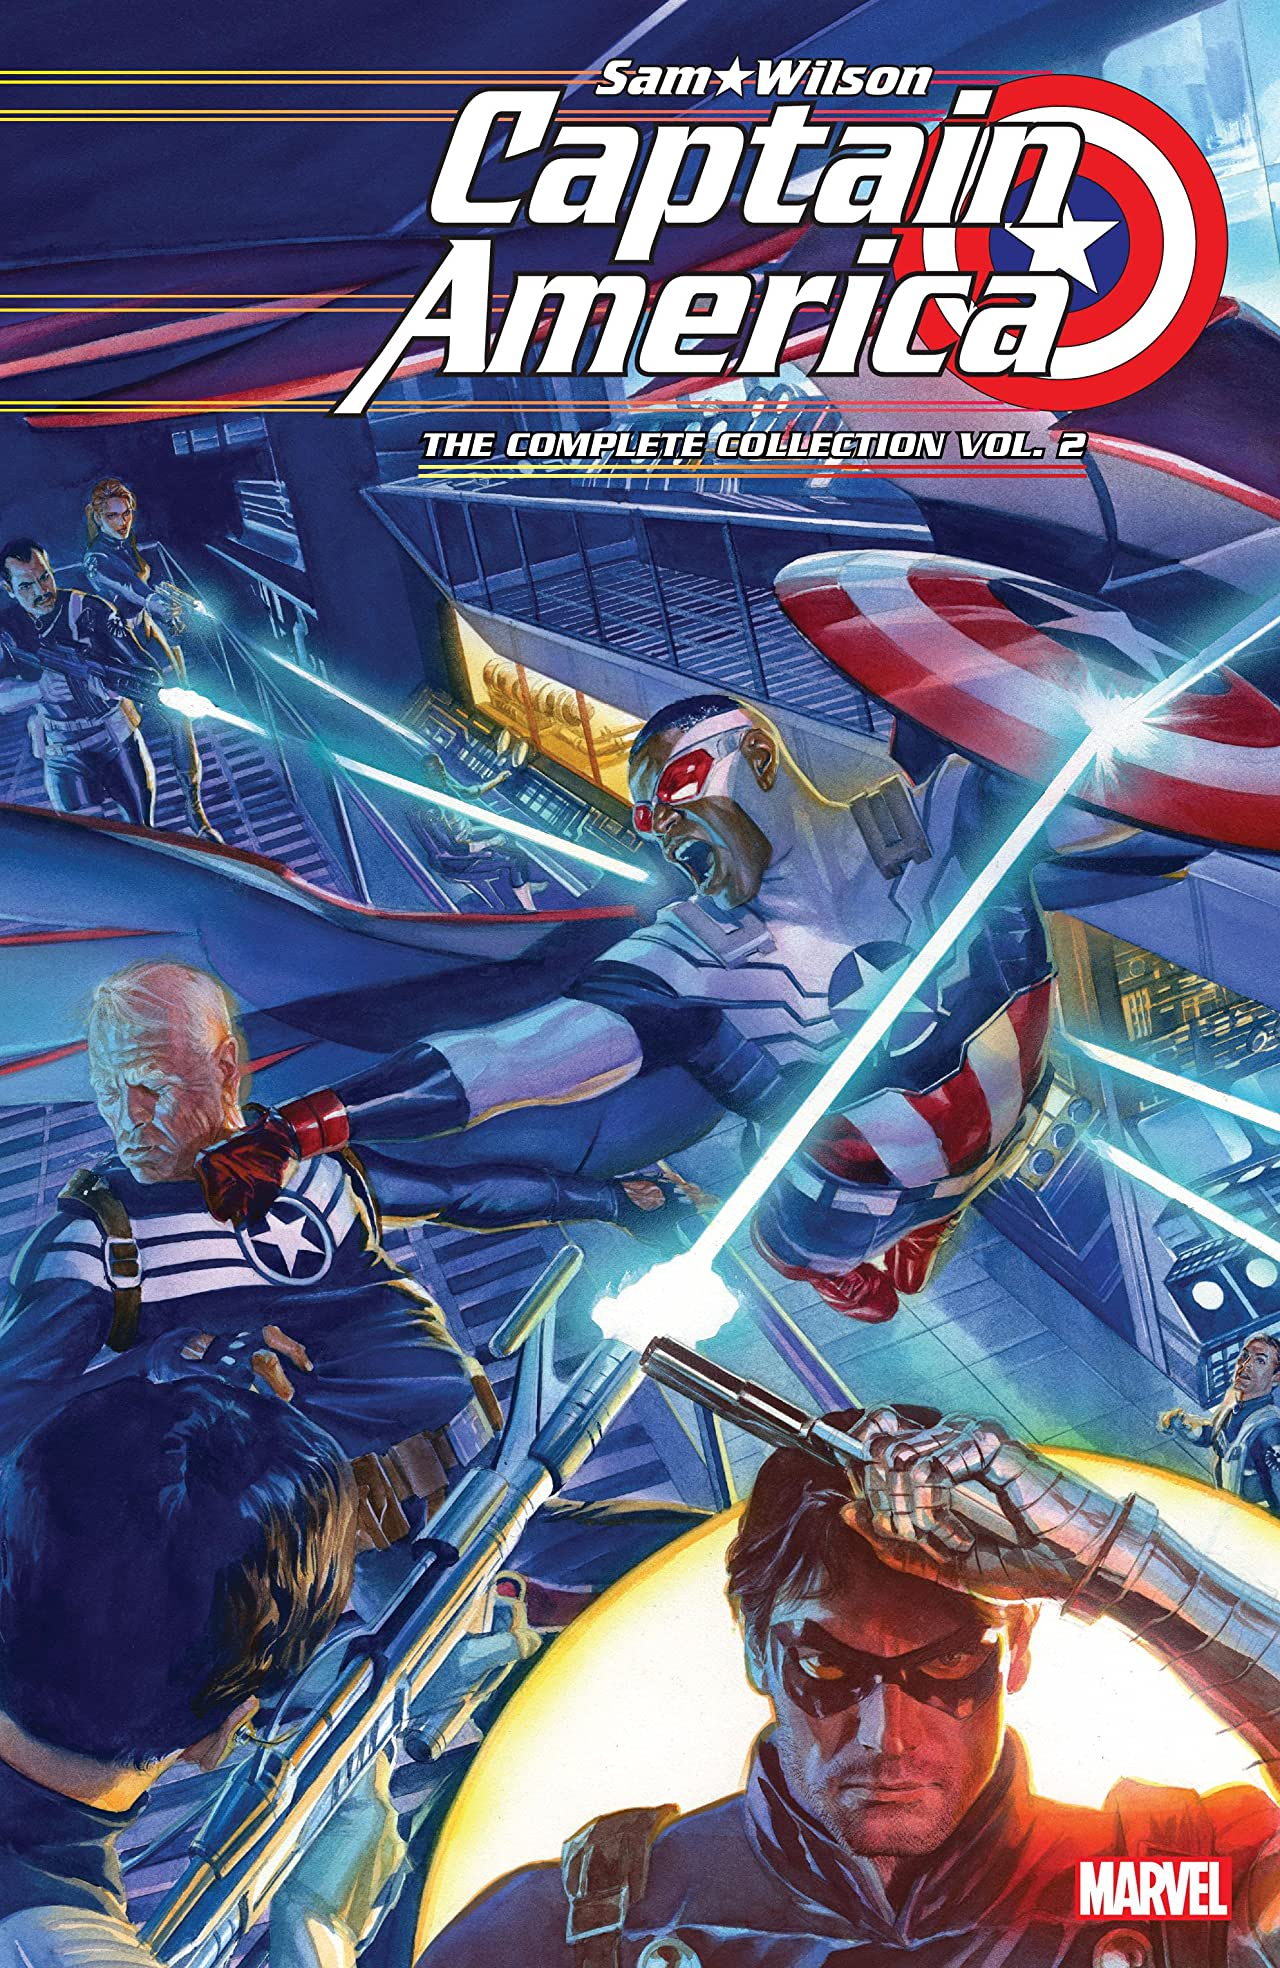 Captain America: Sam Wilson - The Complete Collection Vol. 2 (Trade Paperback)